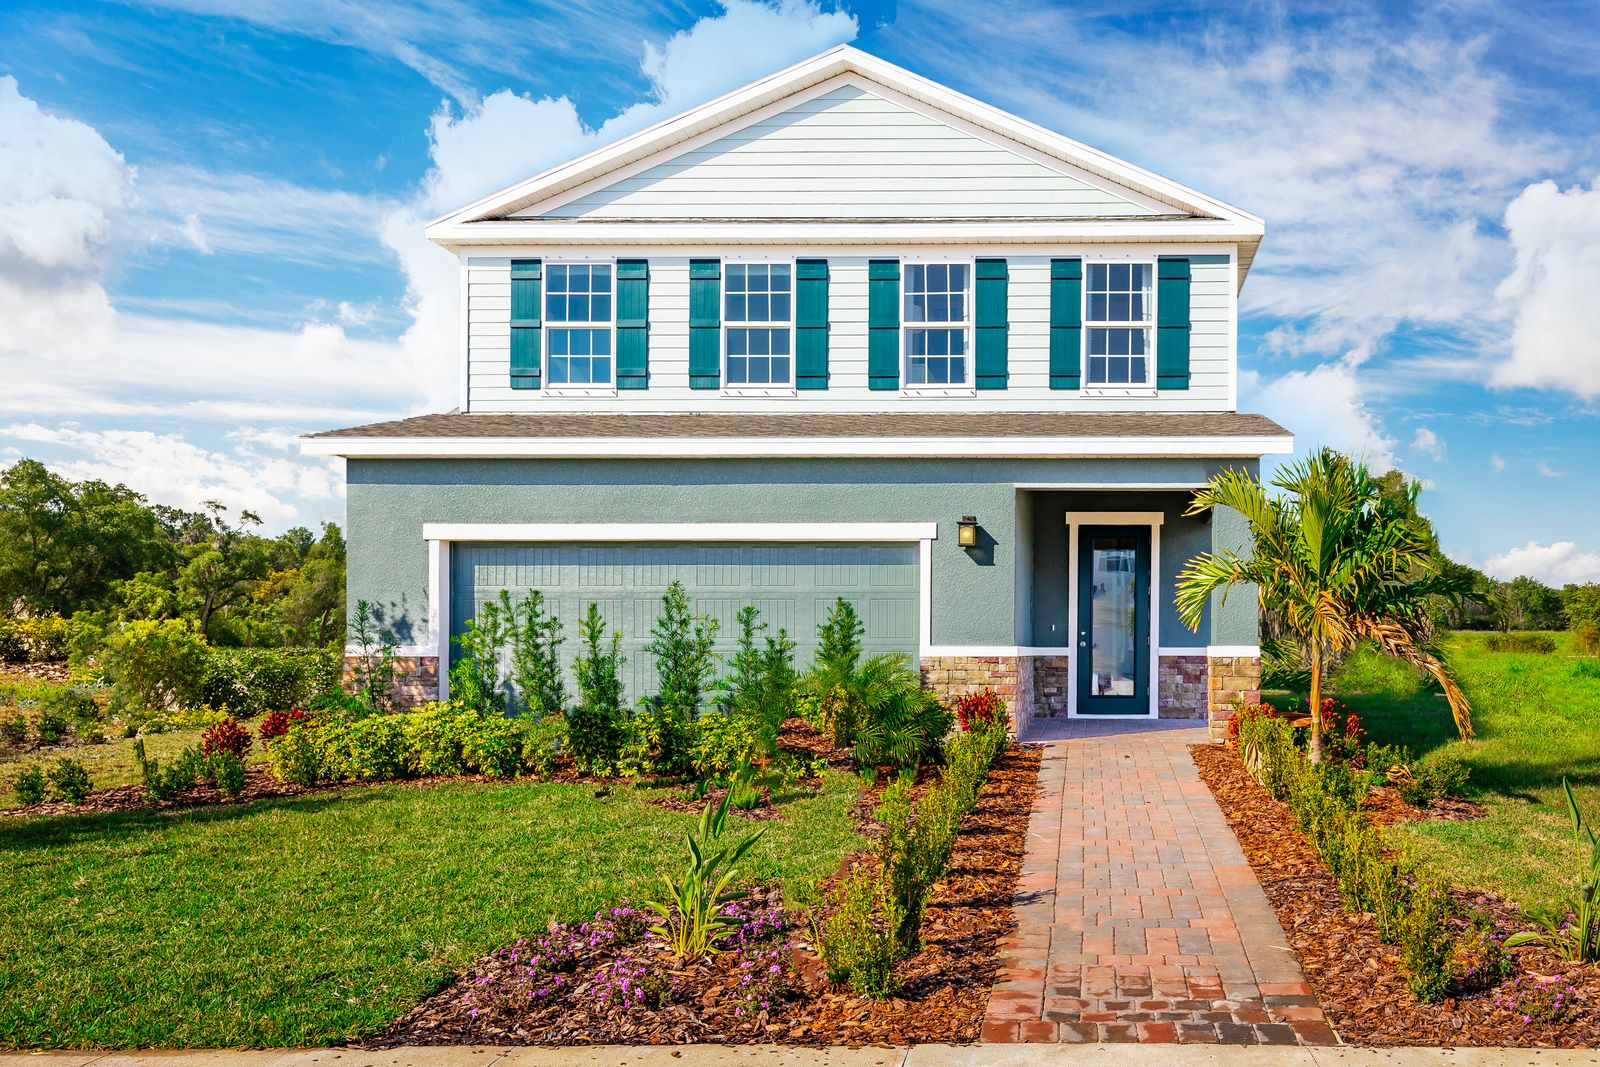 Welcome Home to Moss Creek:With a great location, included features and affordable & easy selections, Moss Creek has it all!Schedule an appointment to see what our homeowners are so excited about!